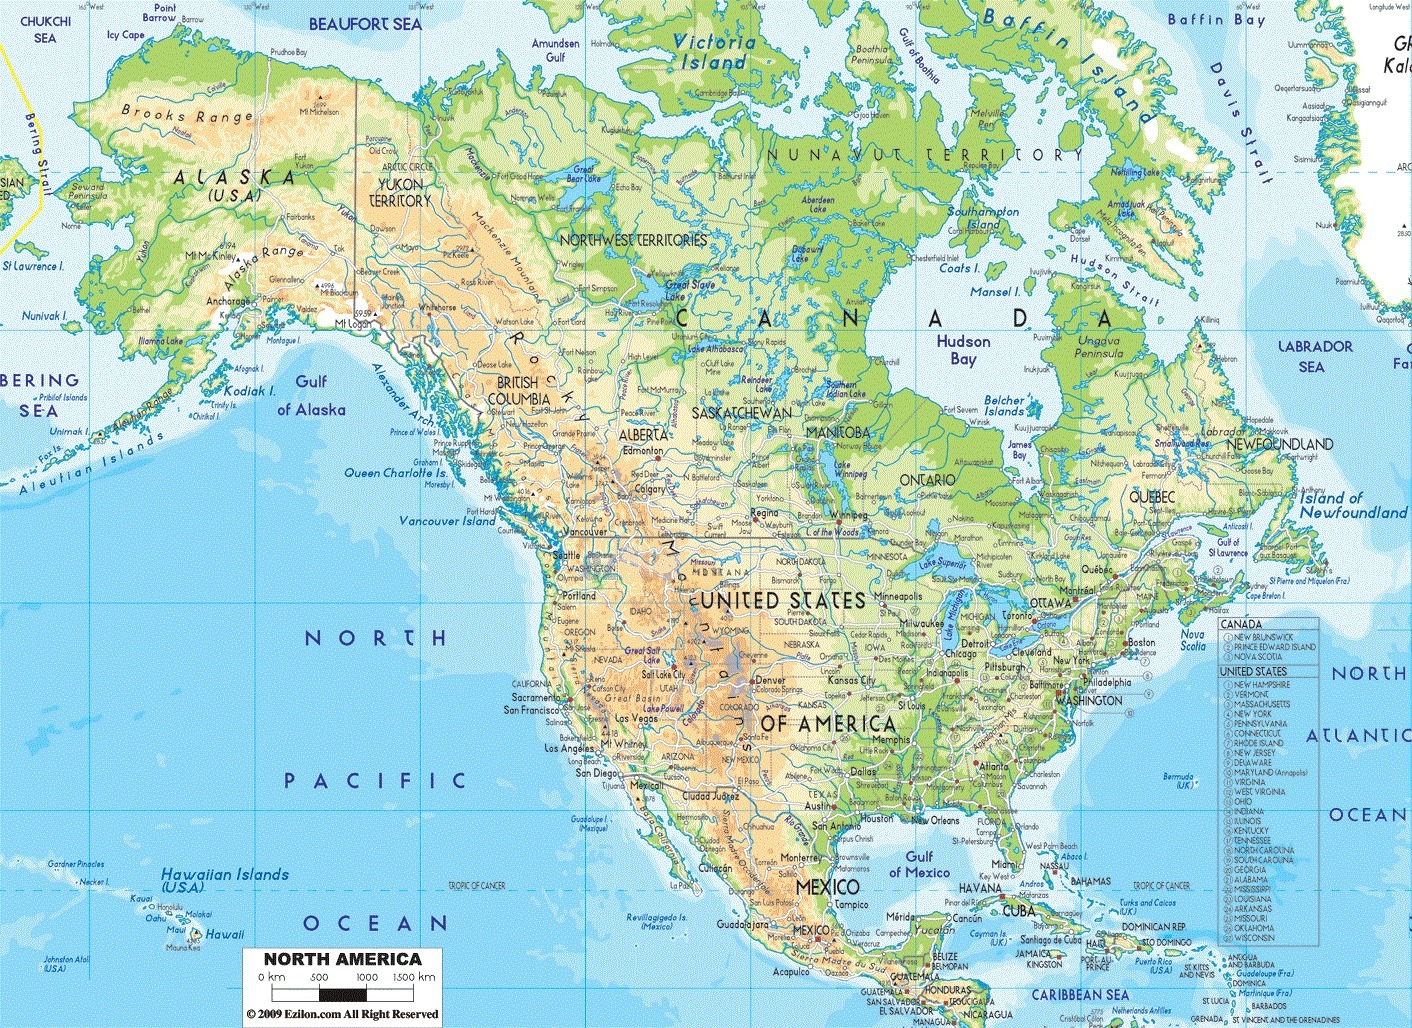 Map Of Maine Map Of Alabama Map Of New Jersey US River Map Map - Physical map of colombia